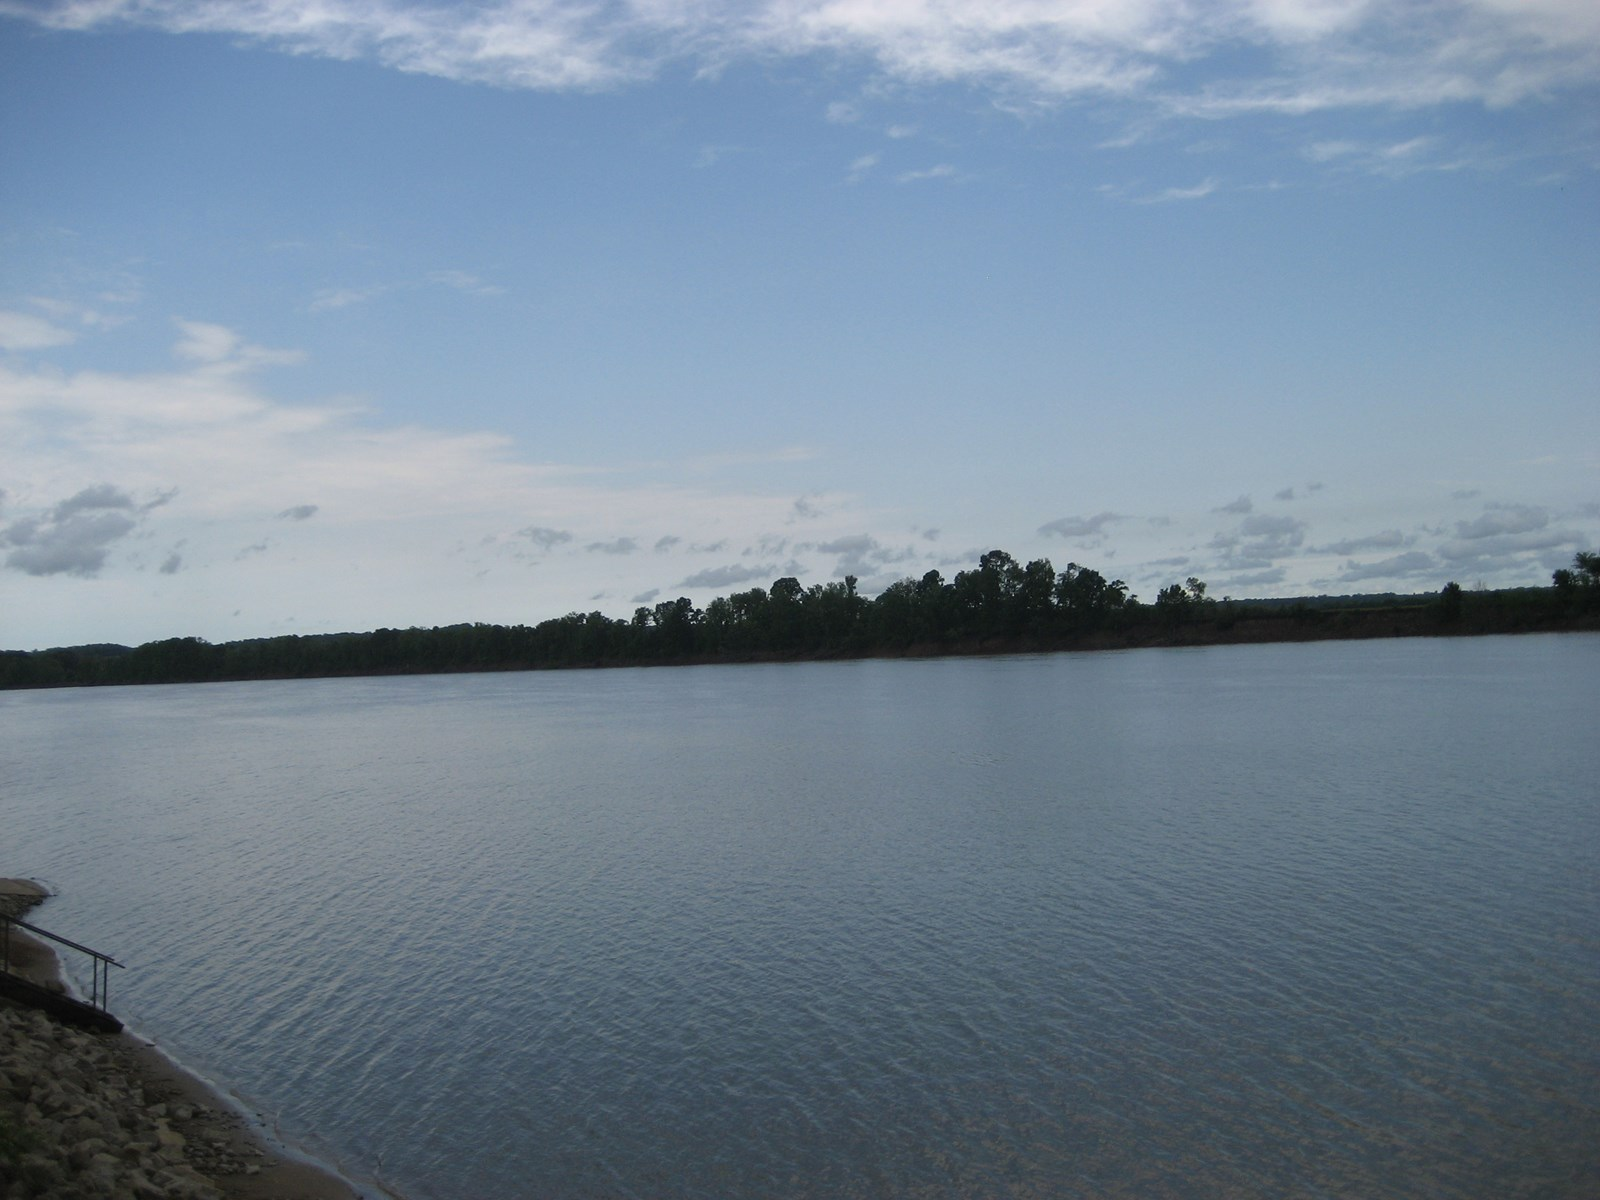 WATERFRONT LAND FOR SALE, FISHING, BOATING, RECREATION